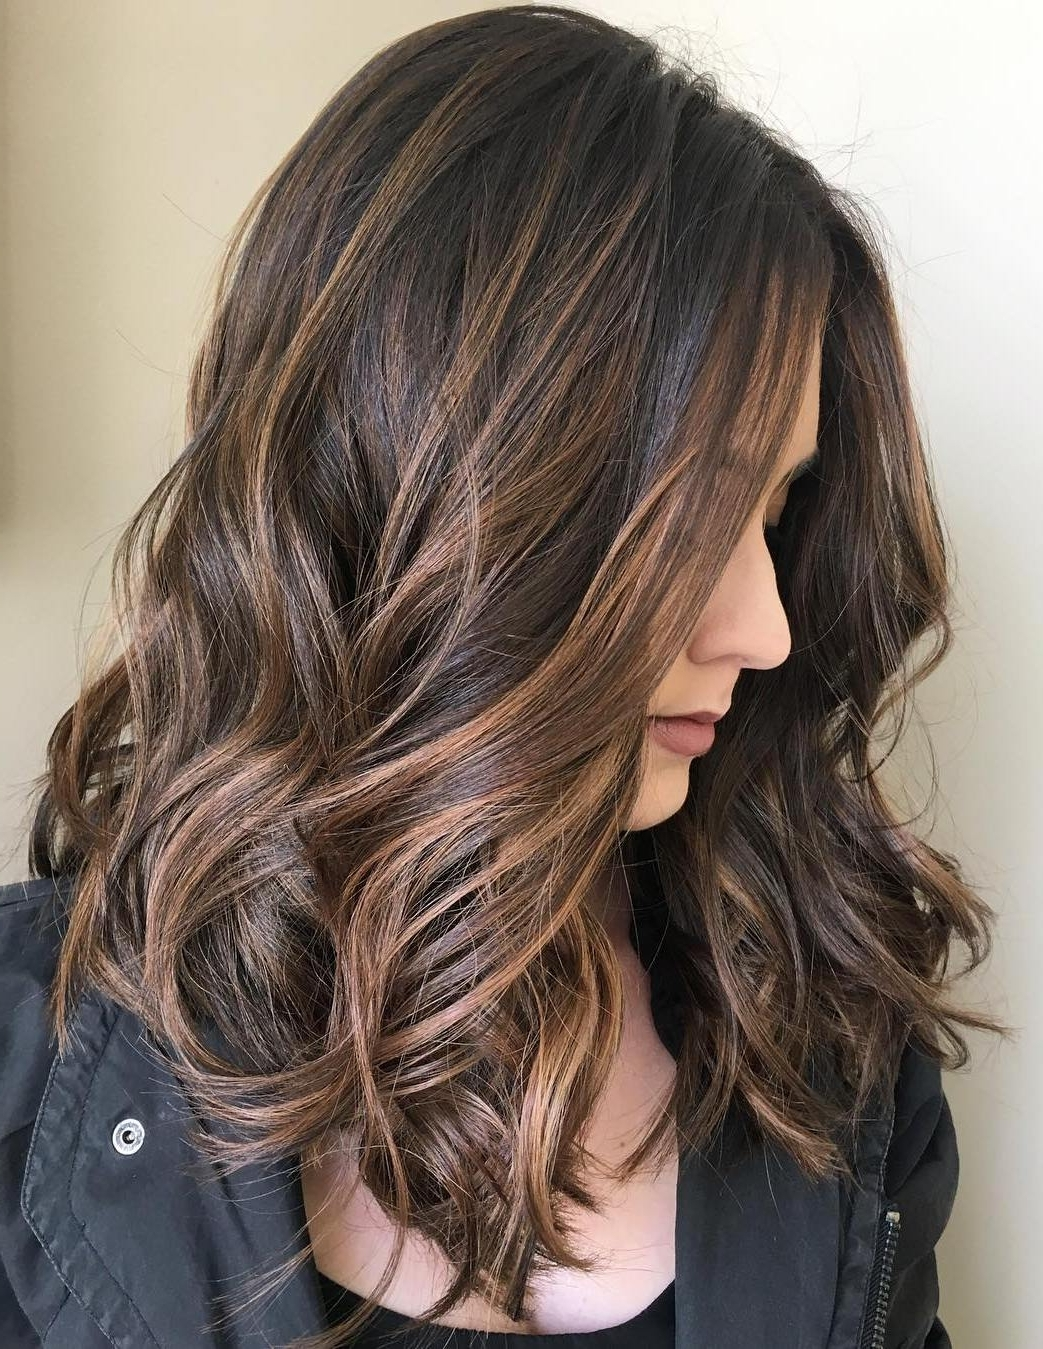 Current Piece Y Pixie Haircuts With Subtle Balayage Regarding 70 Balayage Hair Color Ideas With Blonde, Brown And Caramel Highlights (View 16 of 20)